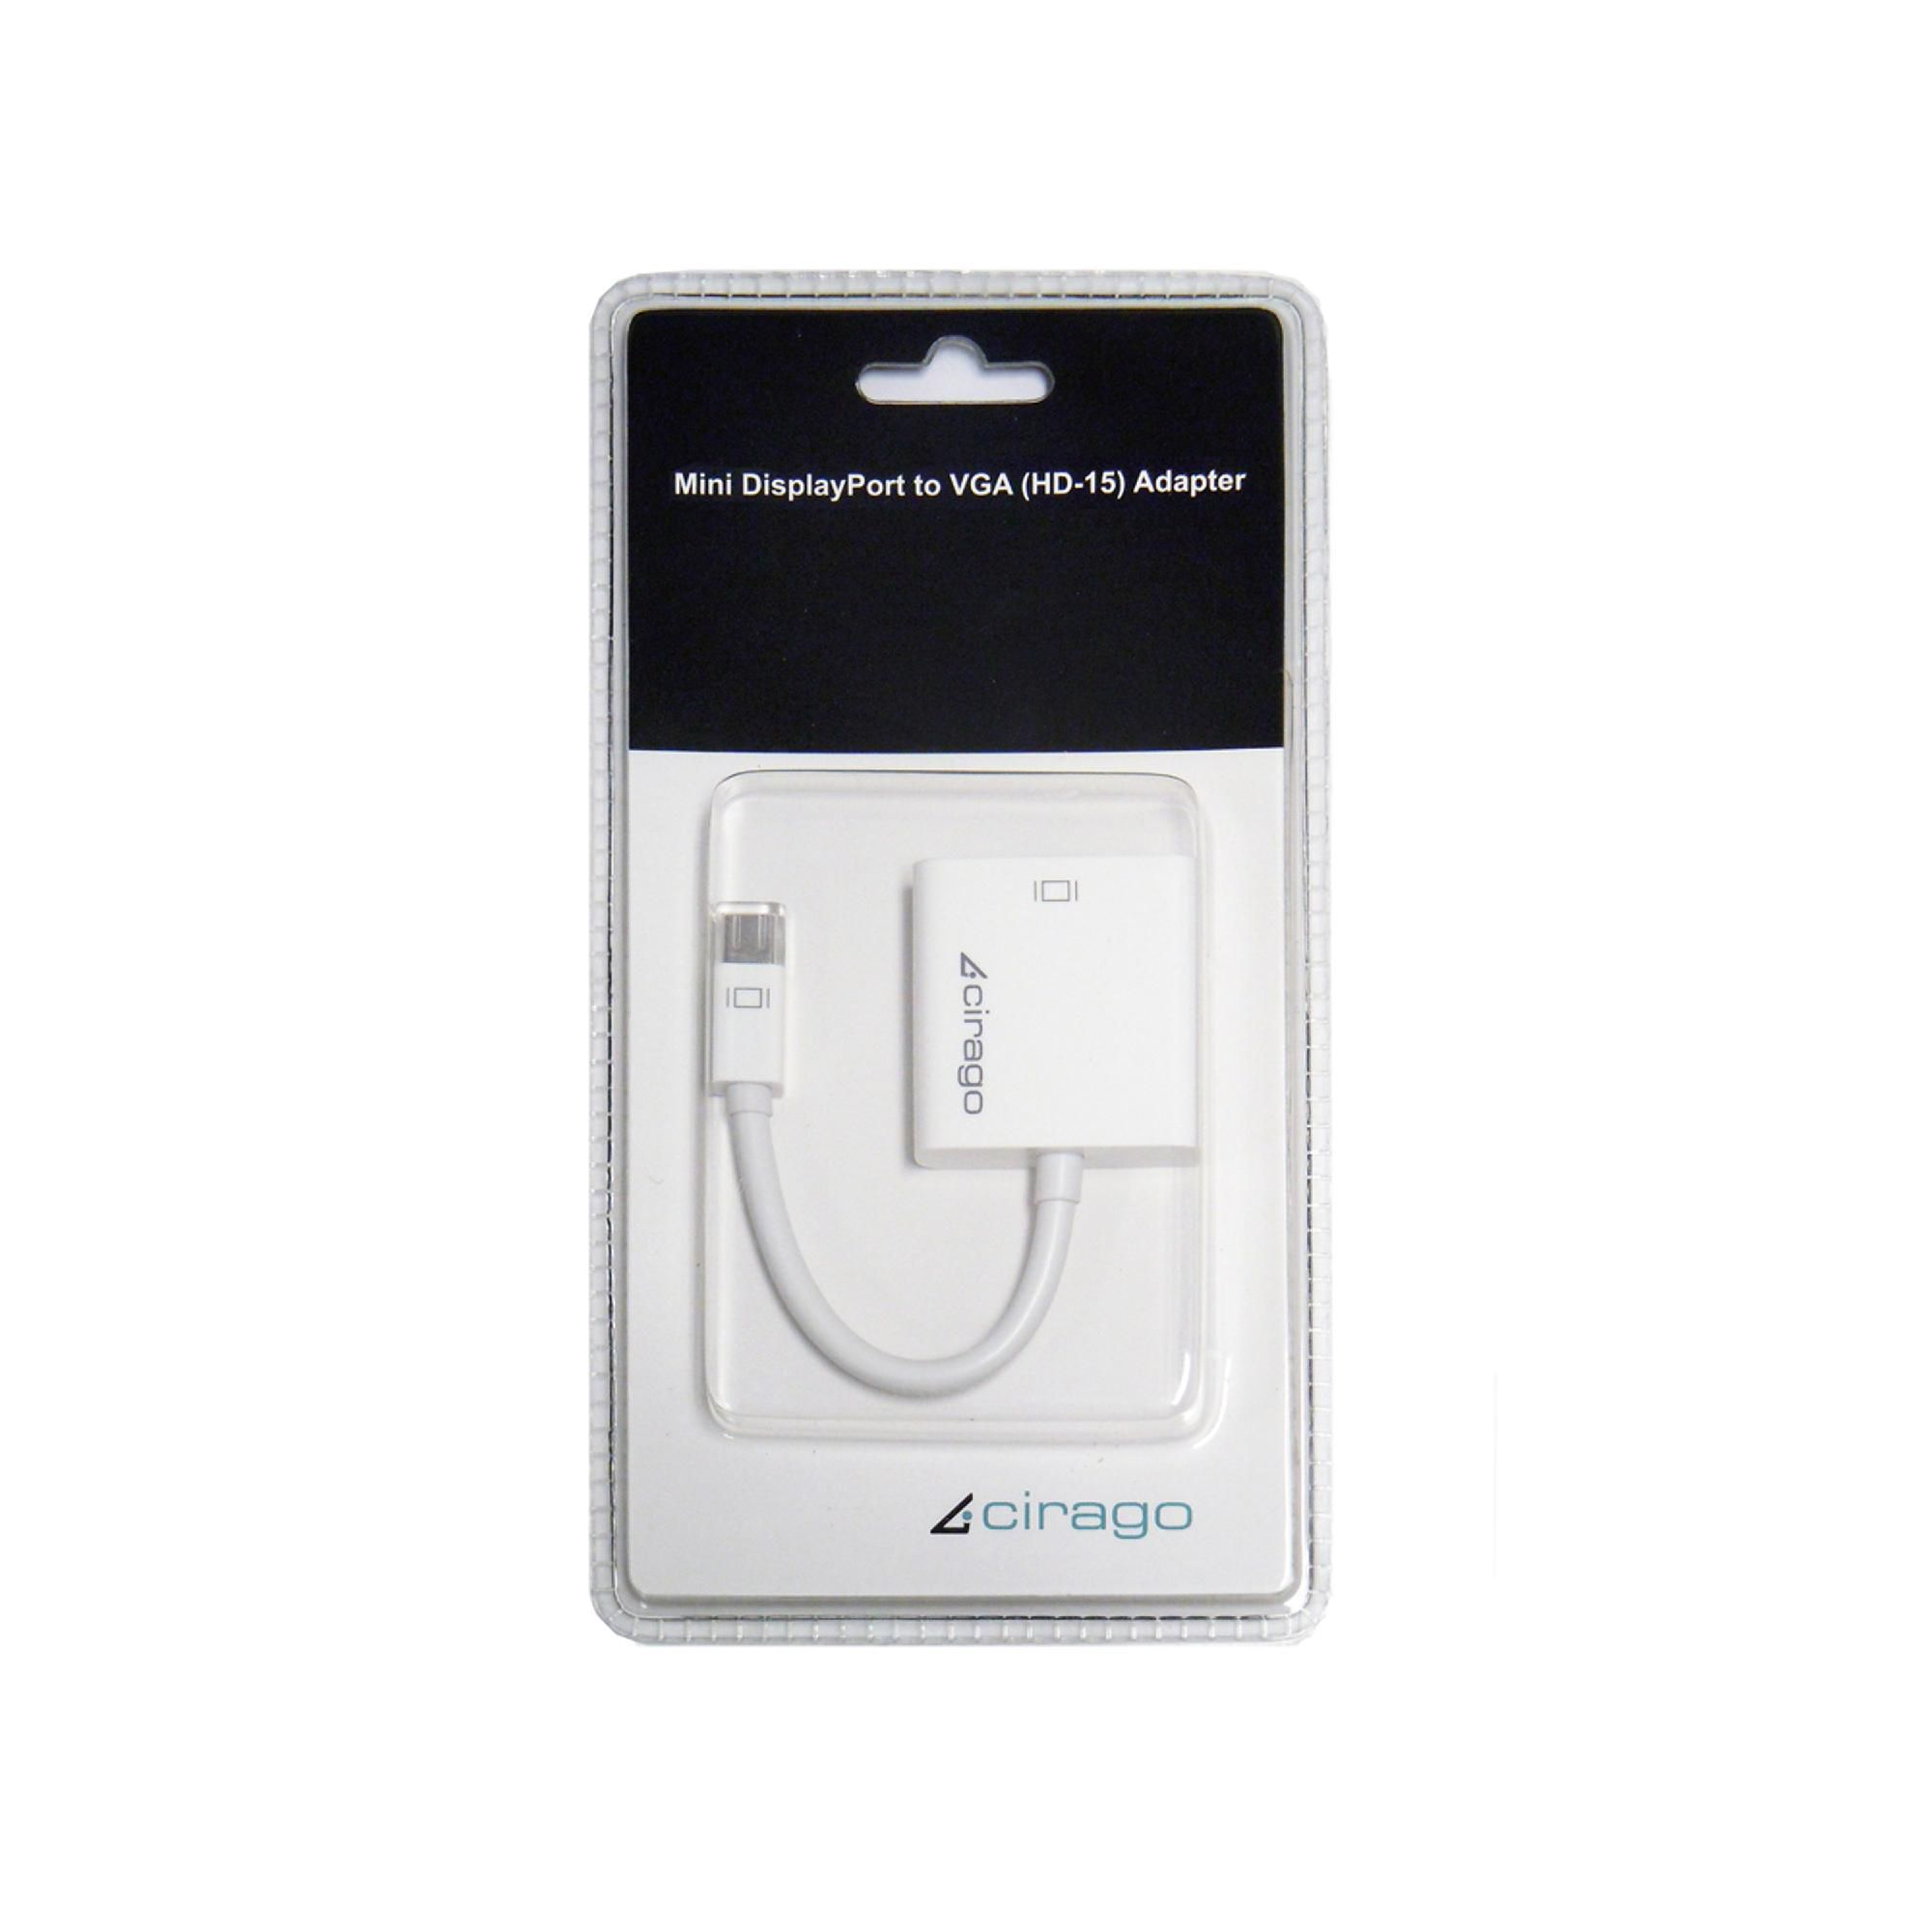 CIRAGO  Cirago Mini DisplayPort to VGA (HD-15)Adapters  ENERGY